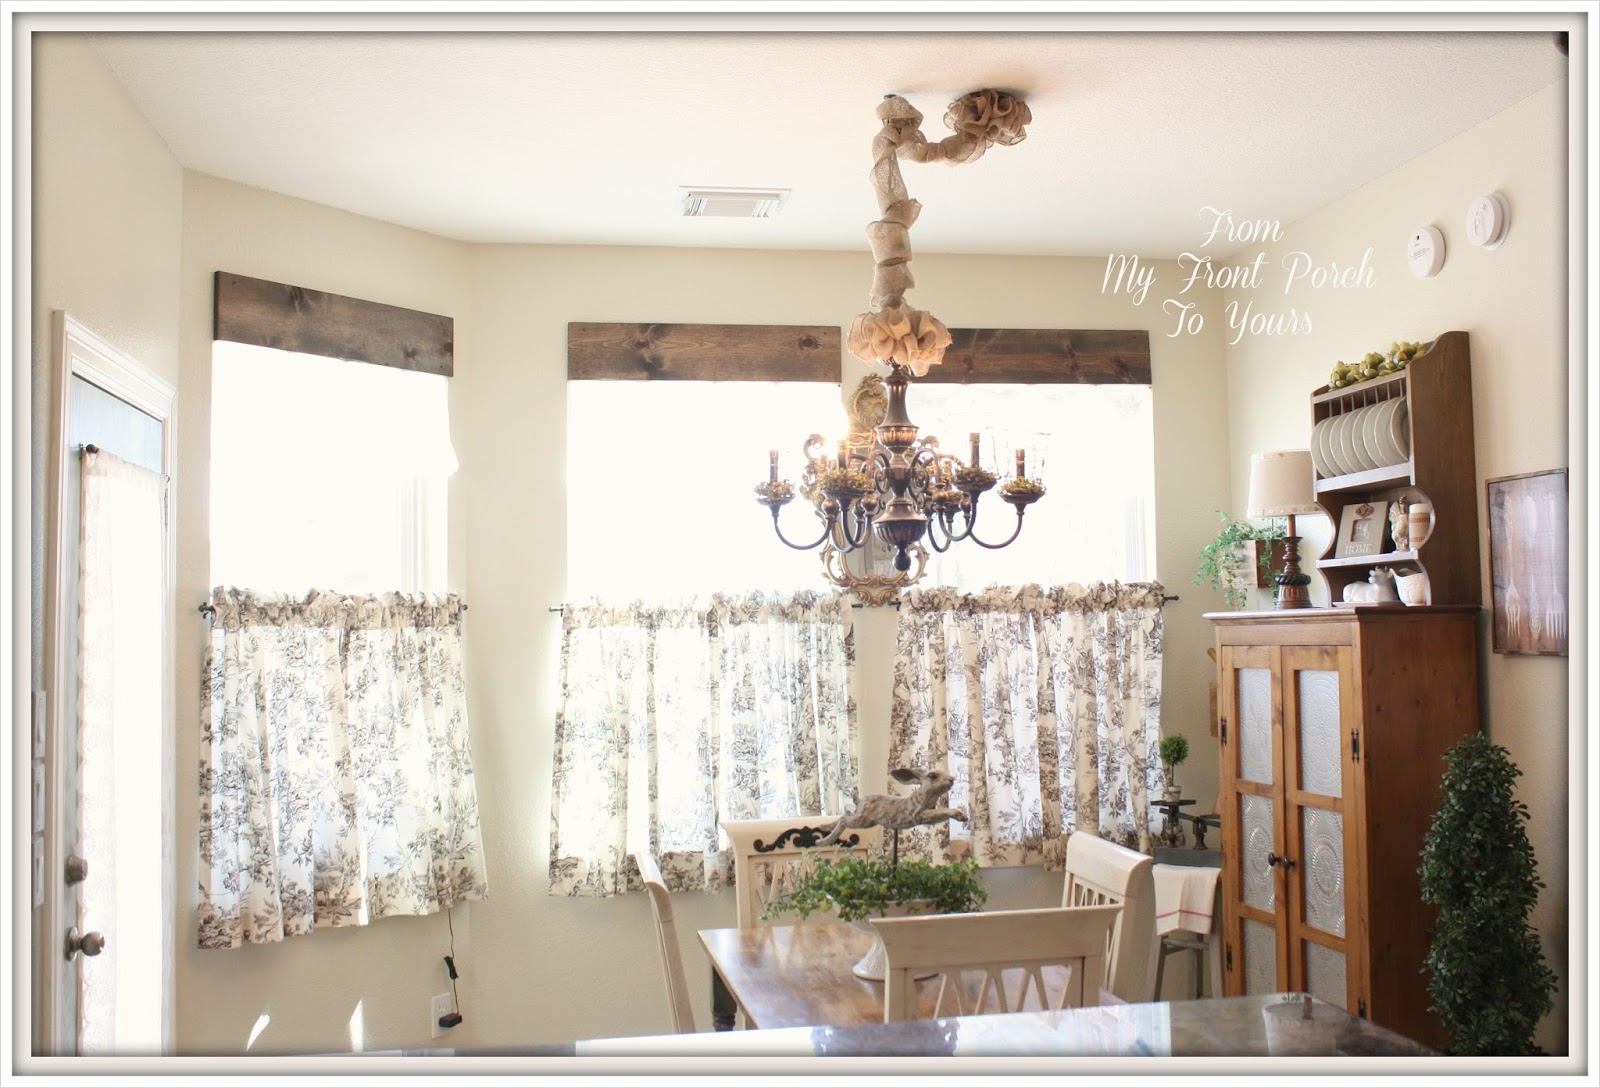 41 Perfect Farmhouse Country Kitchen Curtain Valances 82 French Style Kitchen Curtains Captainwalt 9